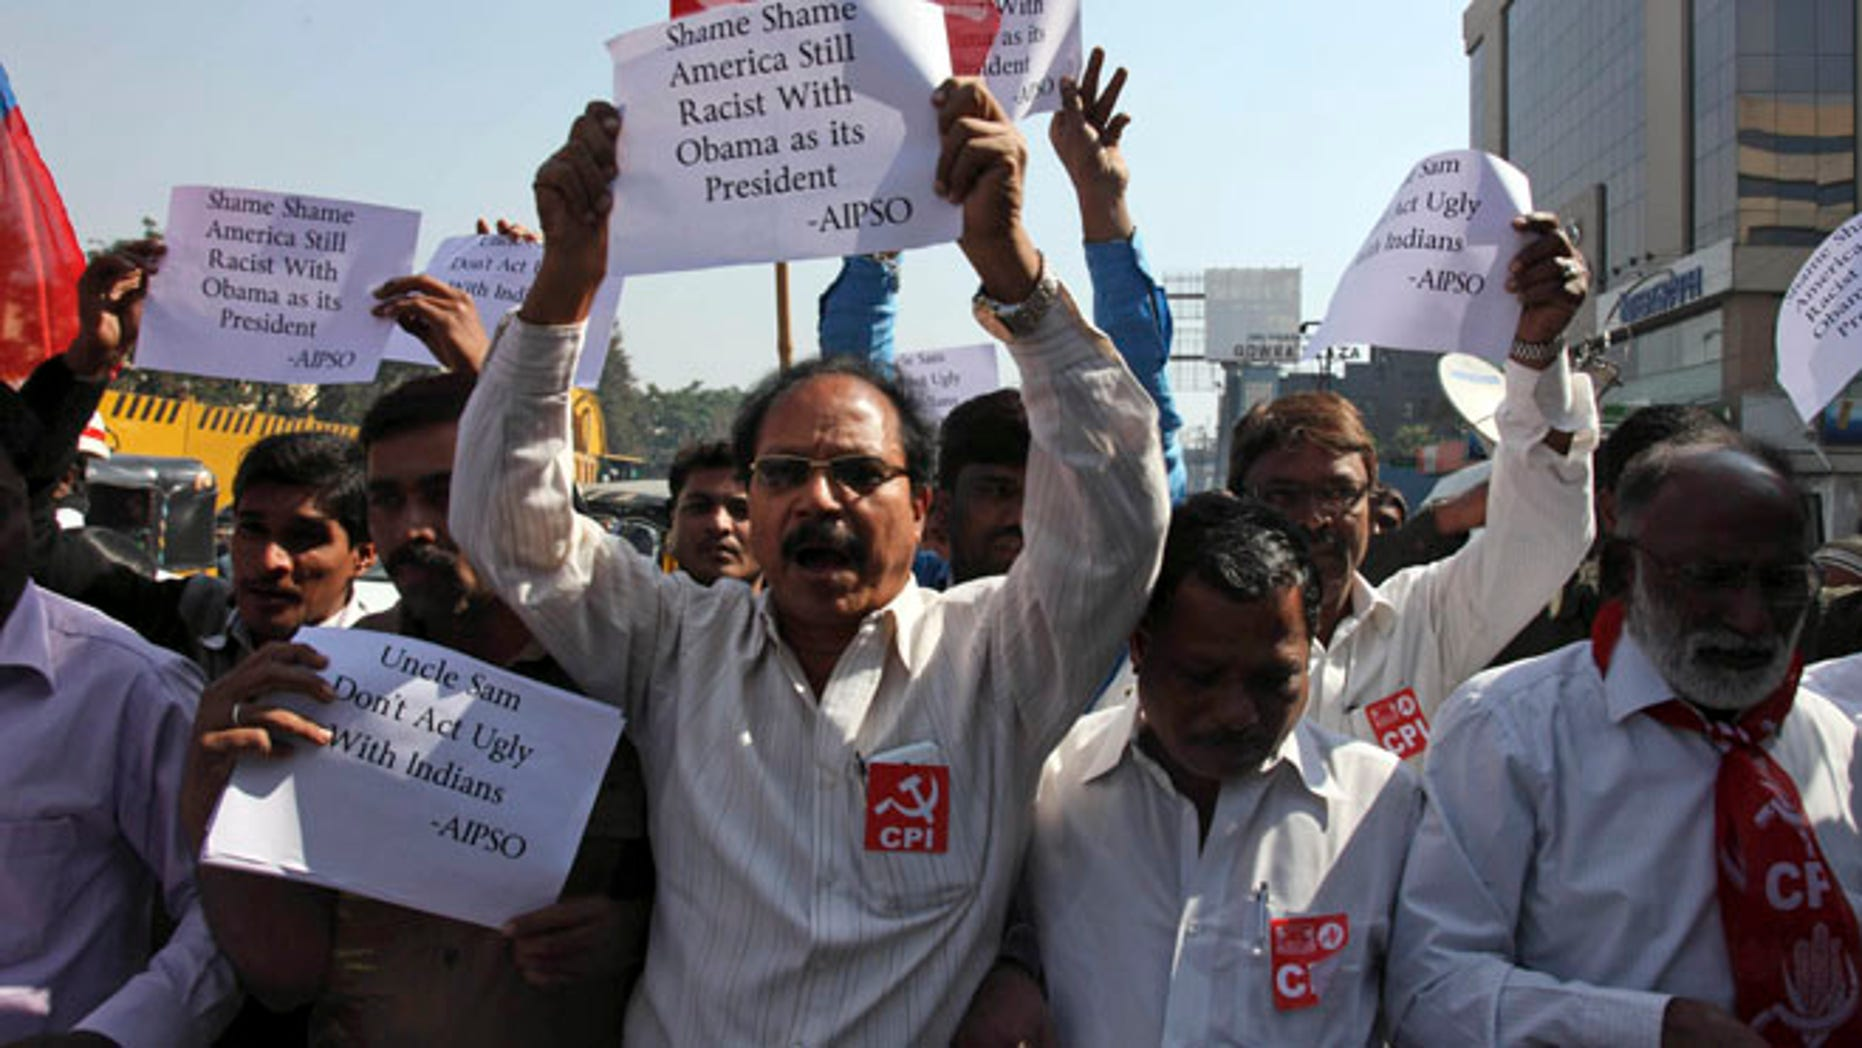 Dec. 19, 2013: Left Party activists hold placard and shout slogans during a protest against the alleged mistreatment of New York based Indian diplomat Devyani Khobragade, near the U.S Consulate in Hyderabad, India.